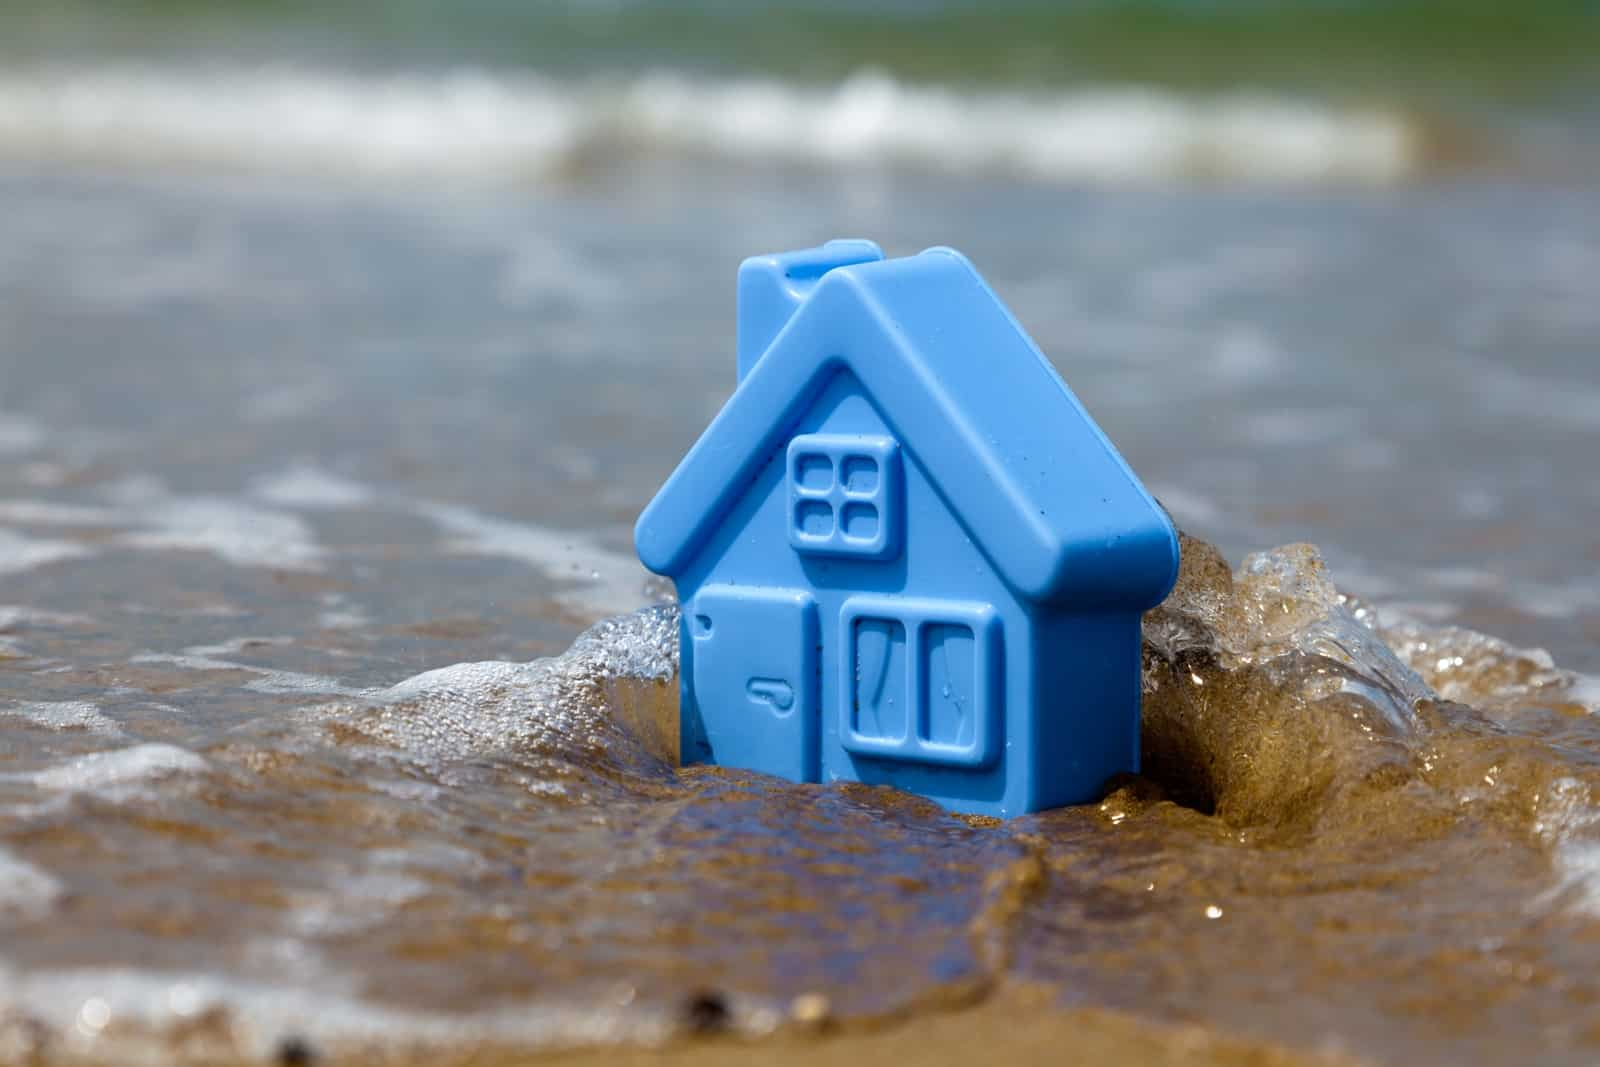 Blue toy plastic house on the sand washes wave